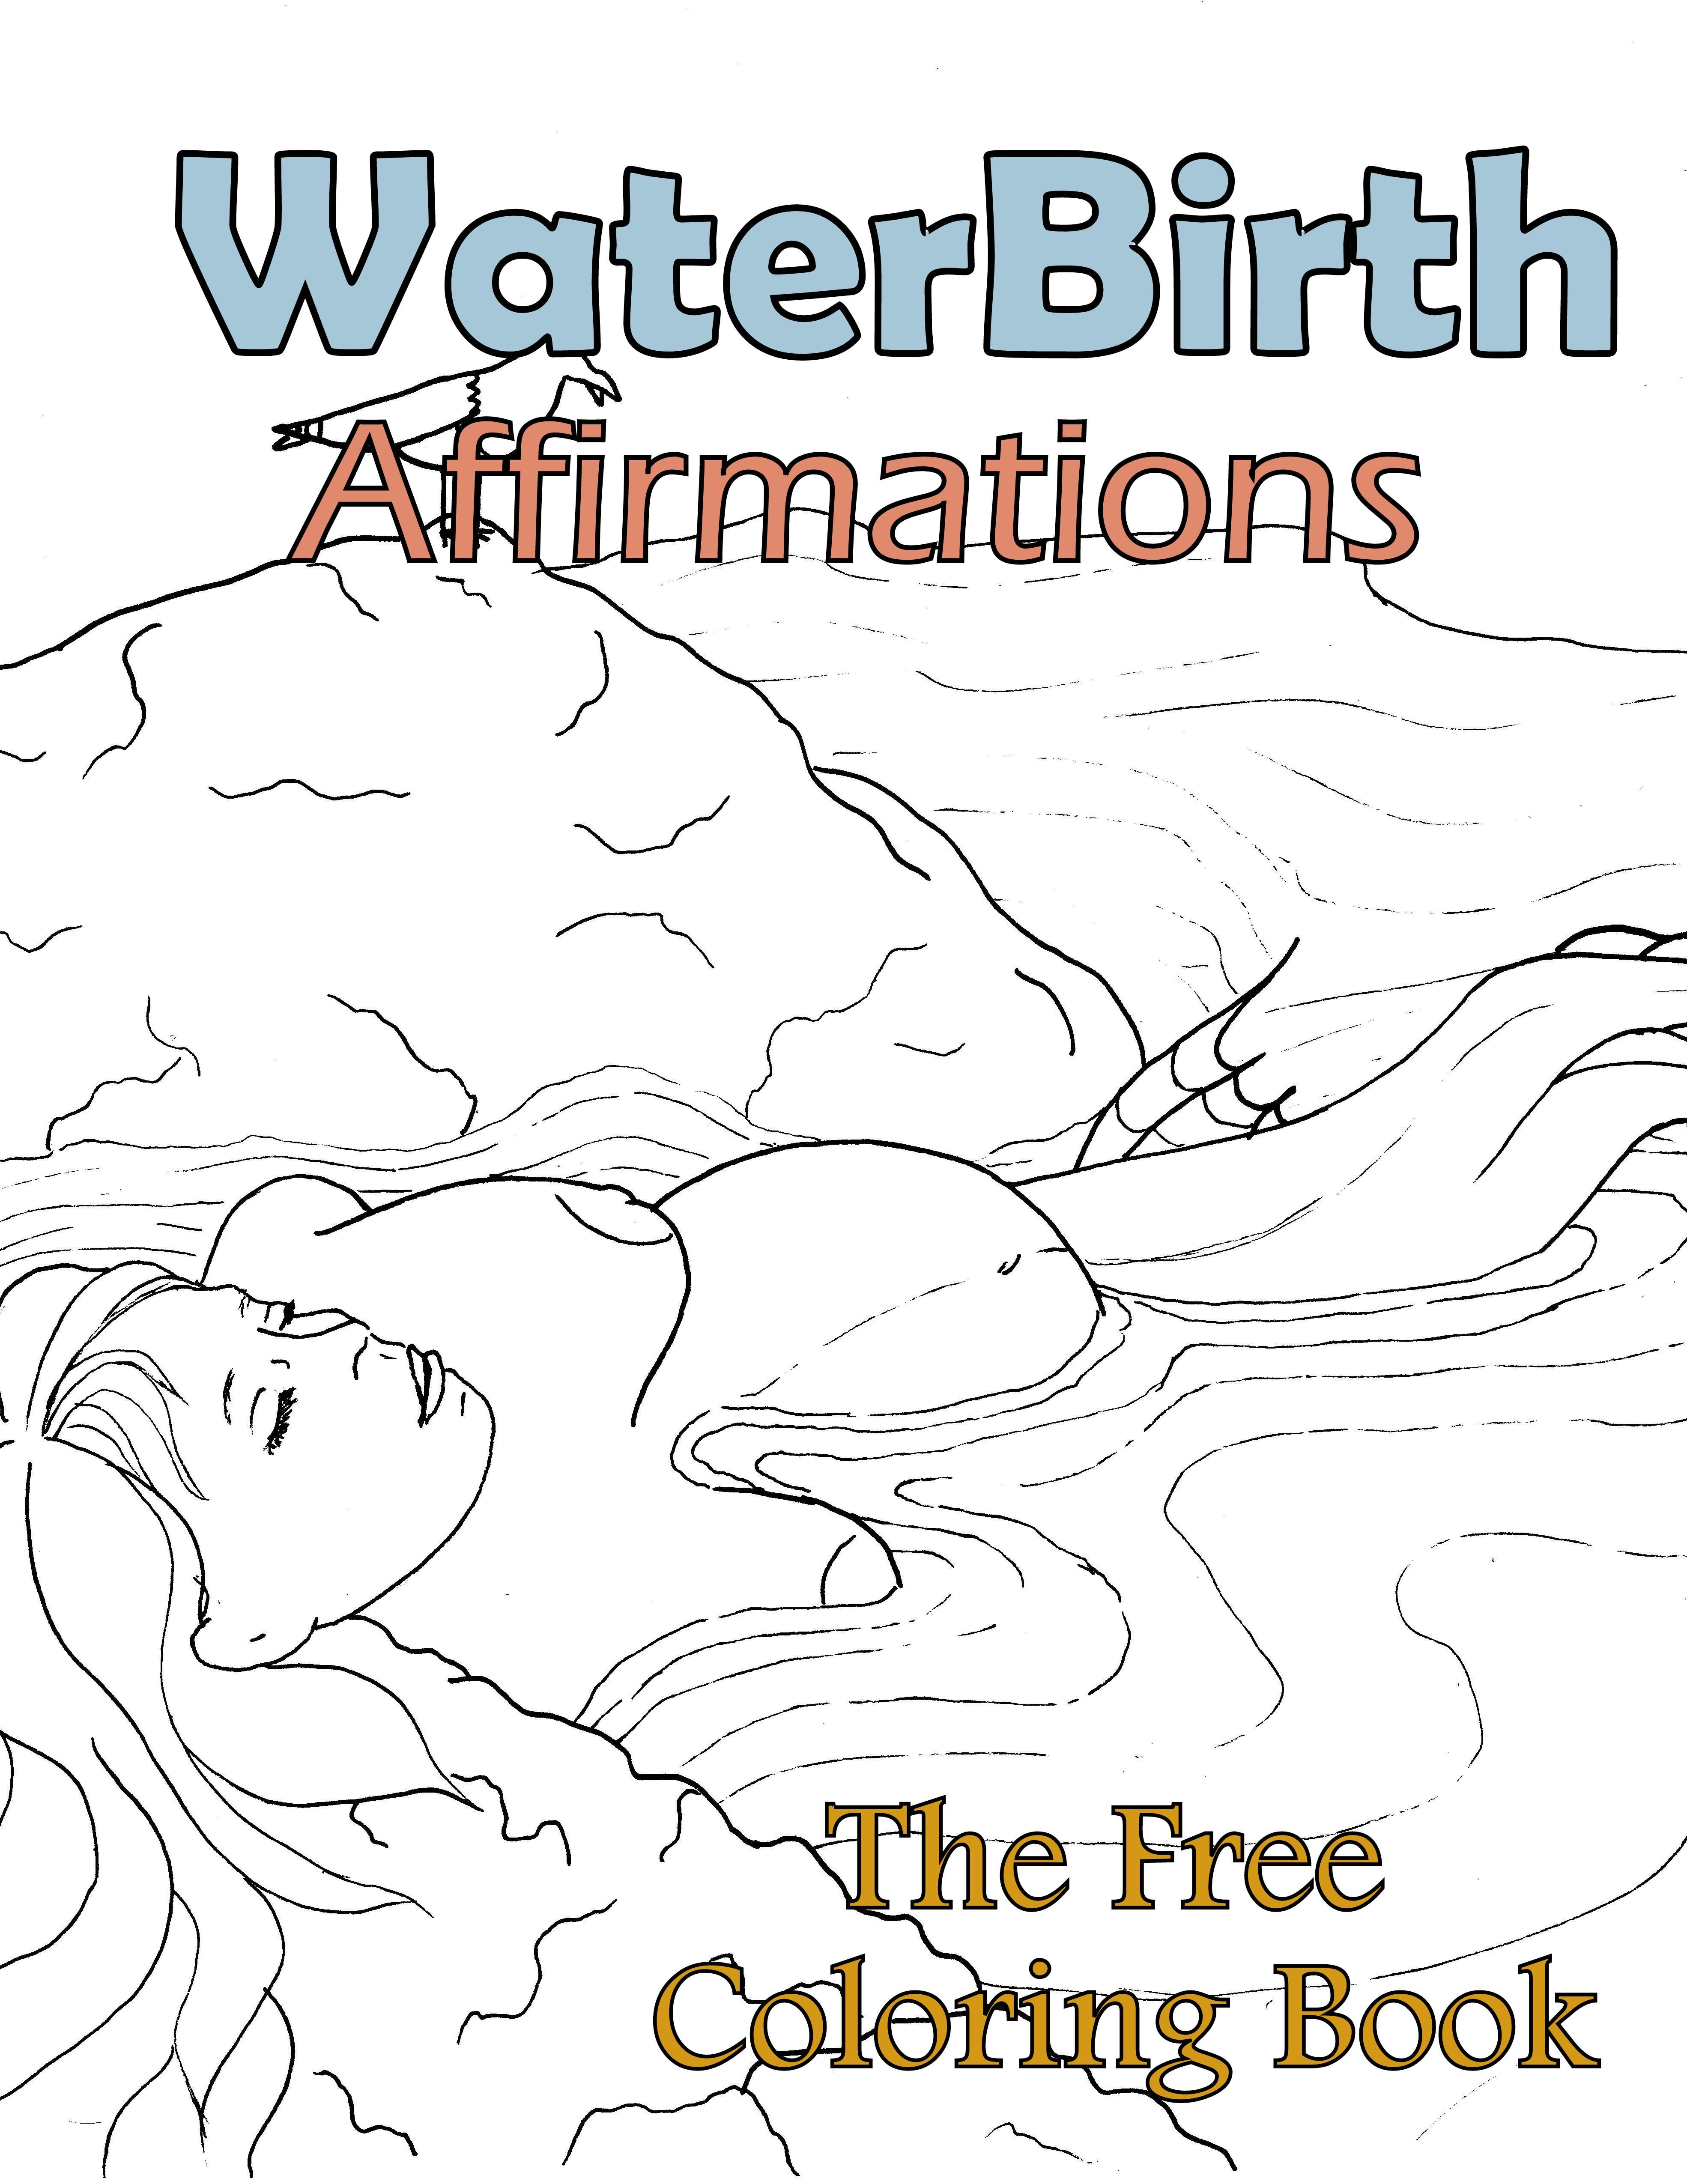 Birth Affirmation Coloring Page -Free Printable!- Water birth ...